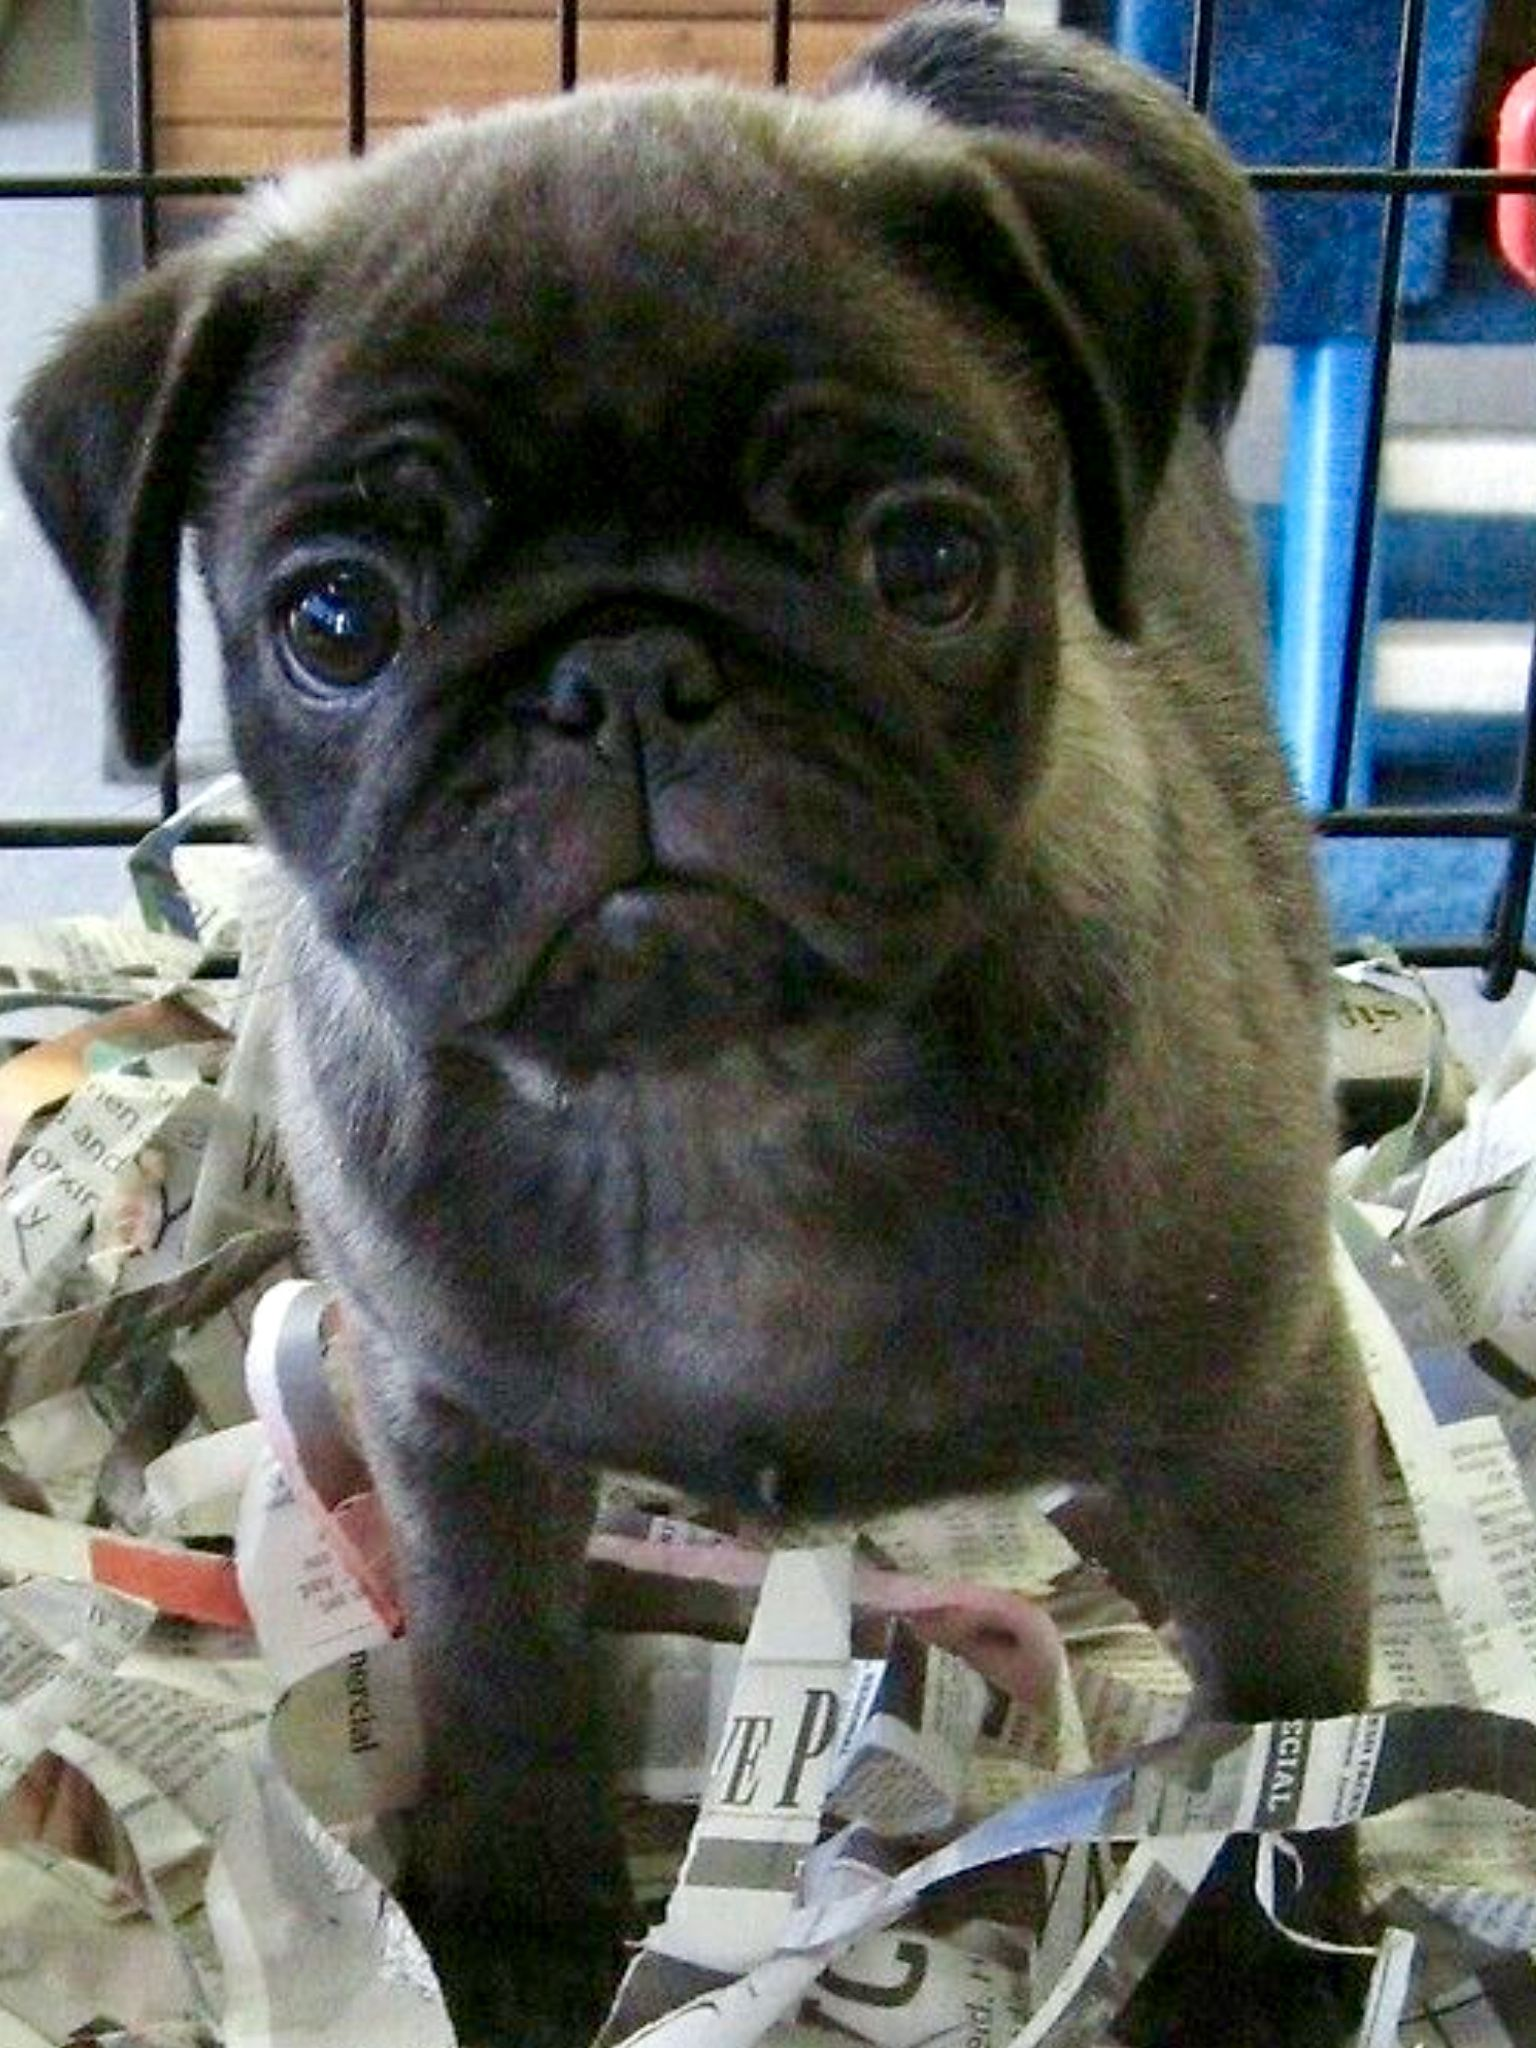 Pin By Elaine Caragianis On Snug As A Pug Baby Pugs Pugs